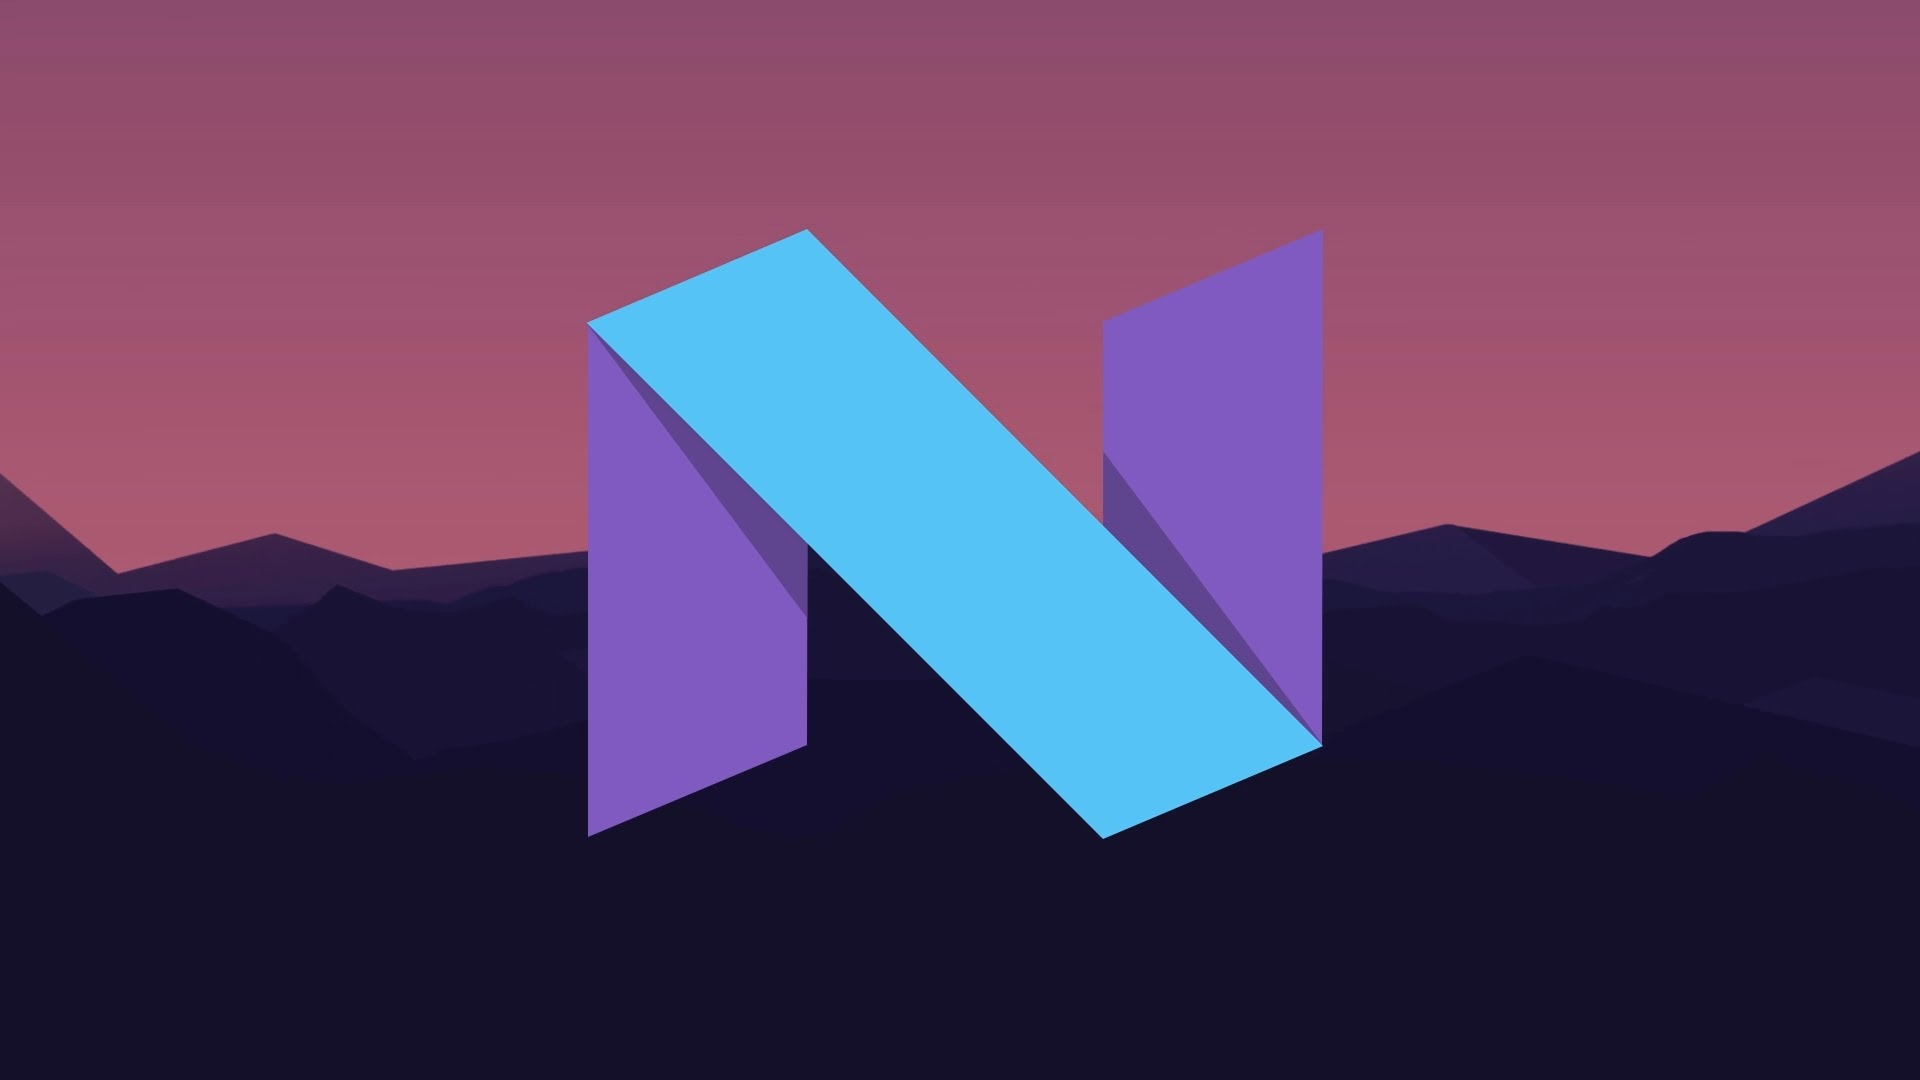 Android 7 Nougat official